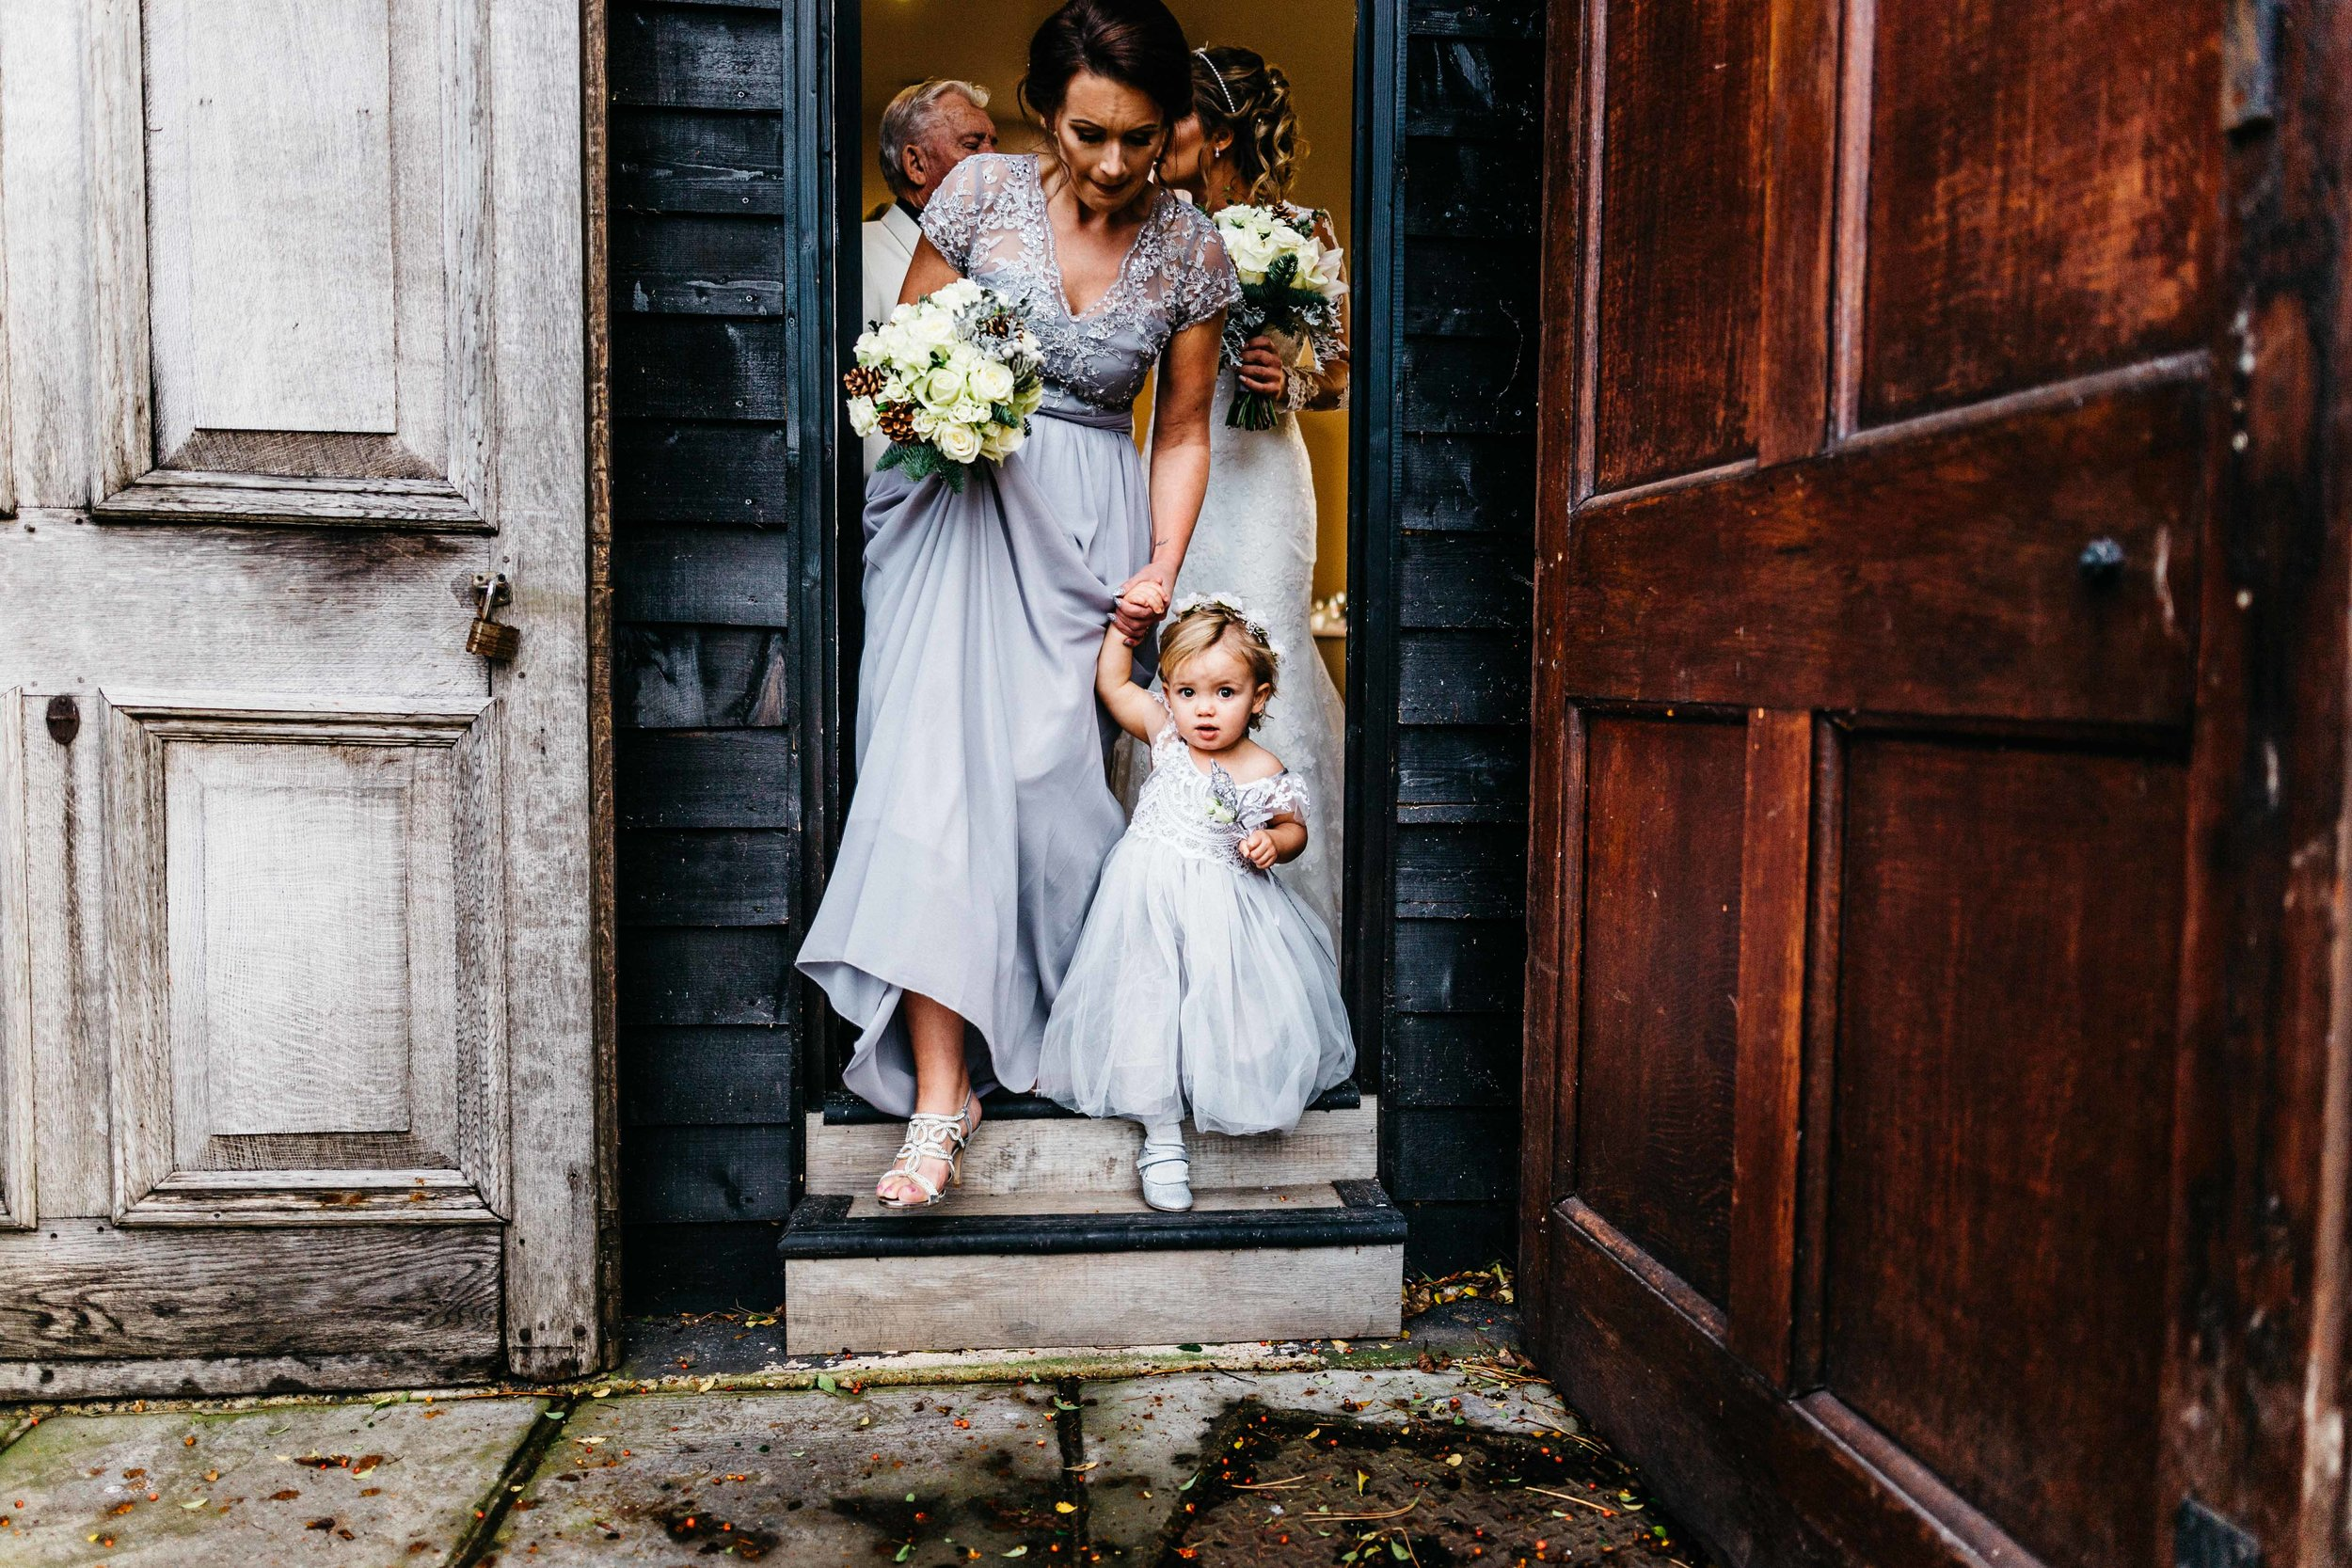 Show time for the flower girl at Winters Barns